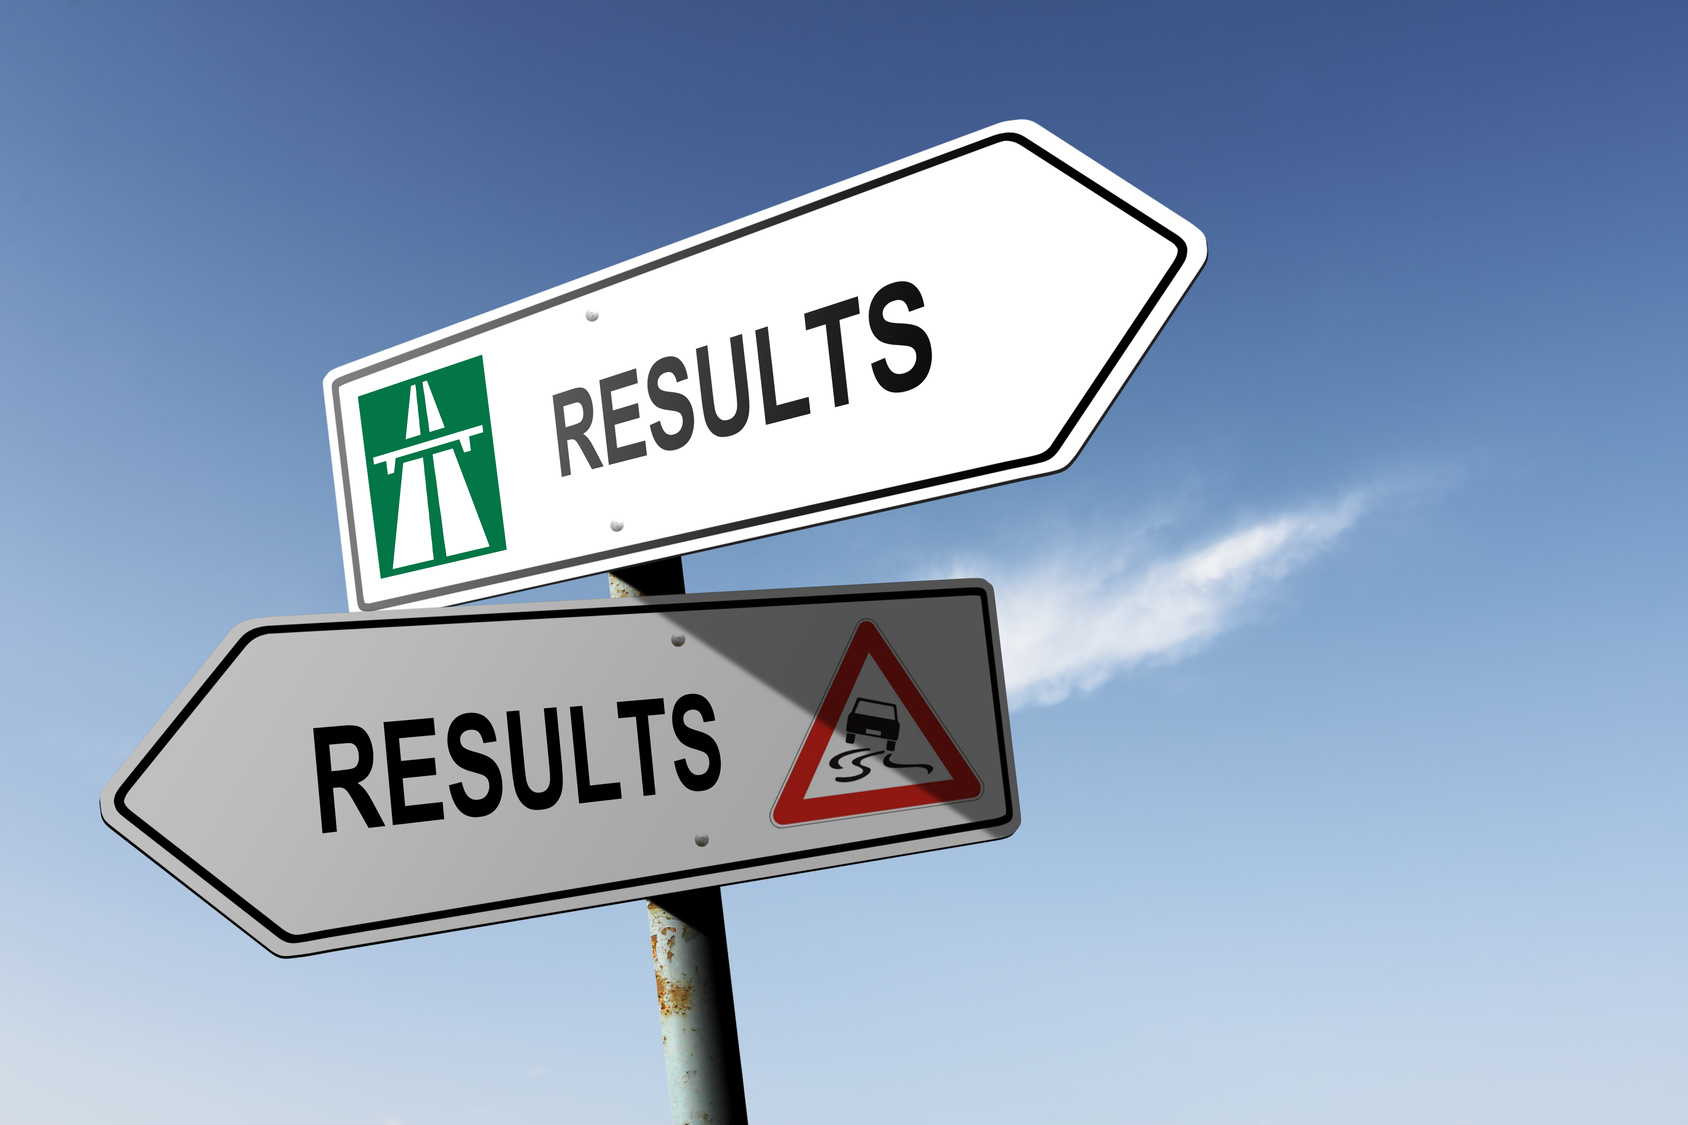 Results directions. Choice for easy way or hard way.